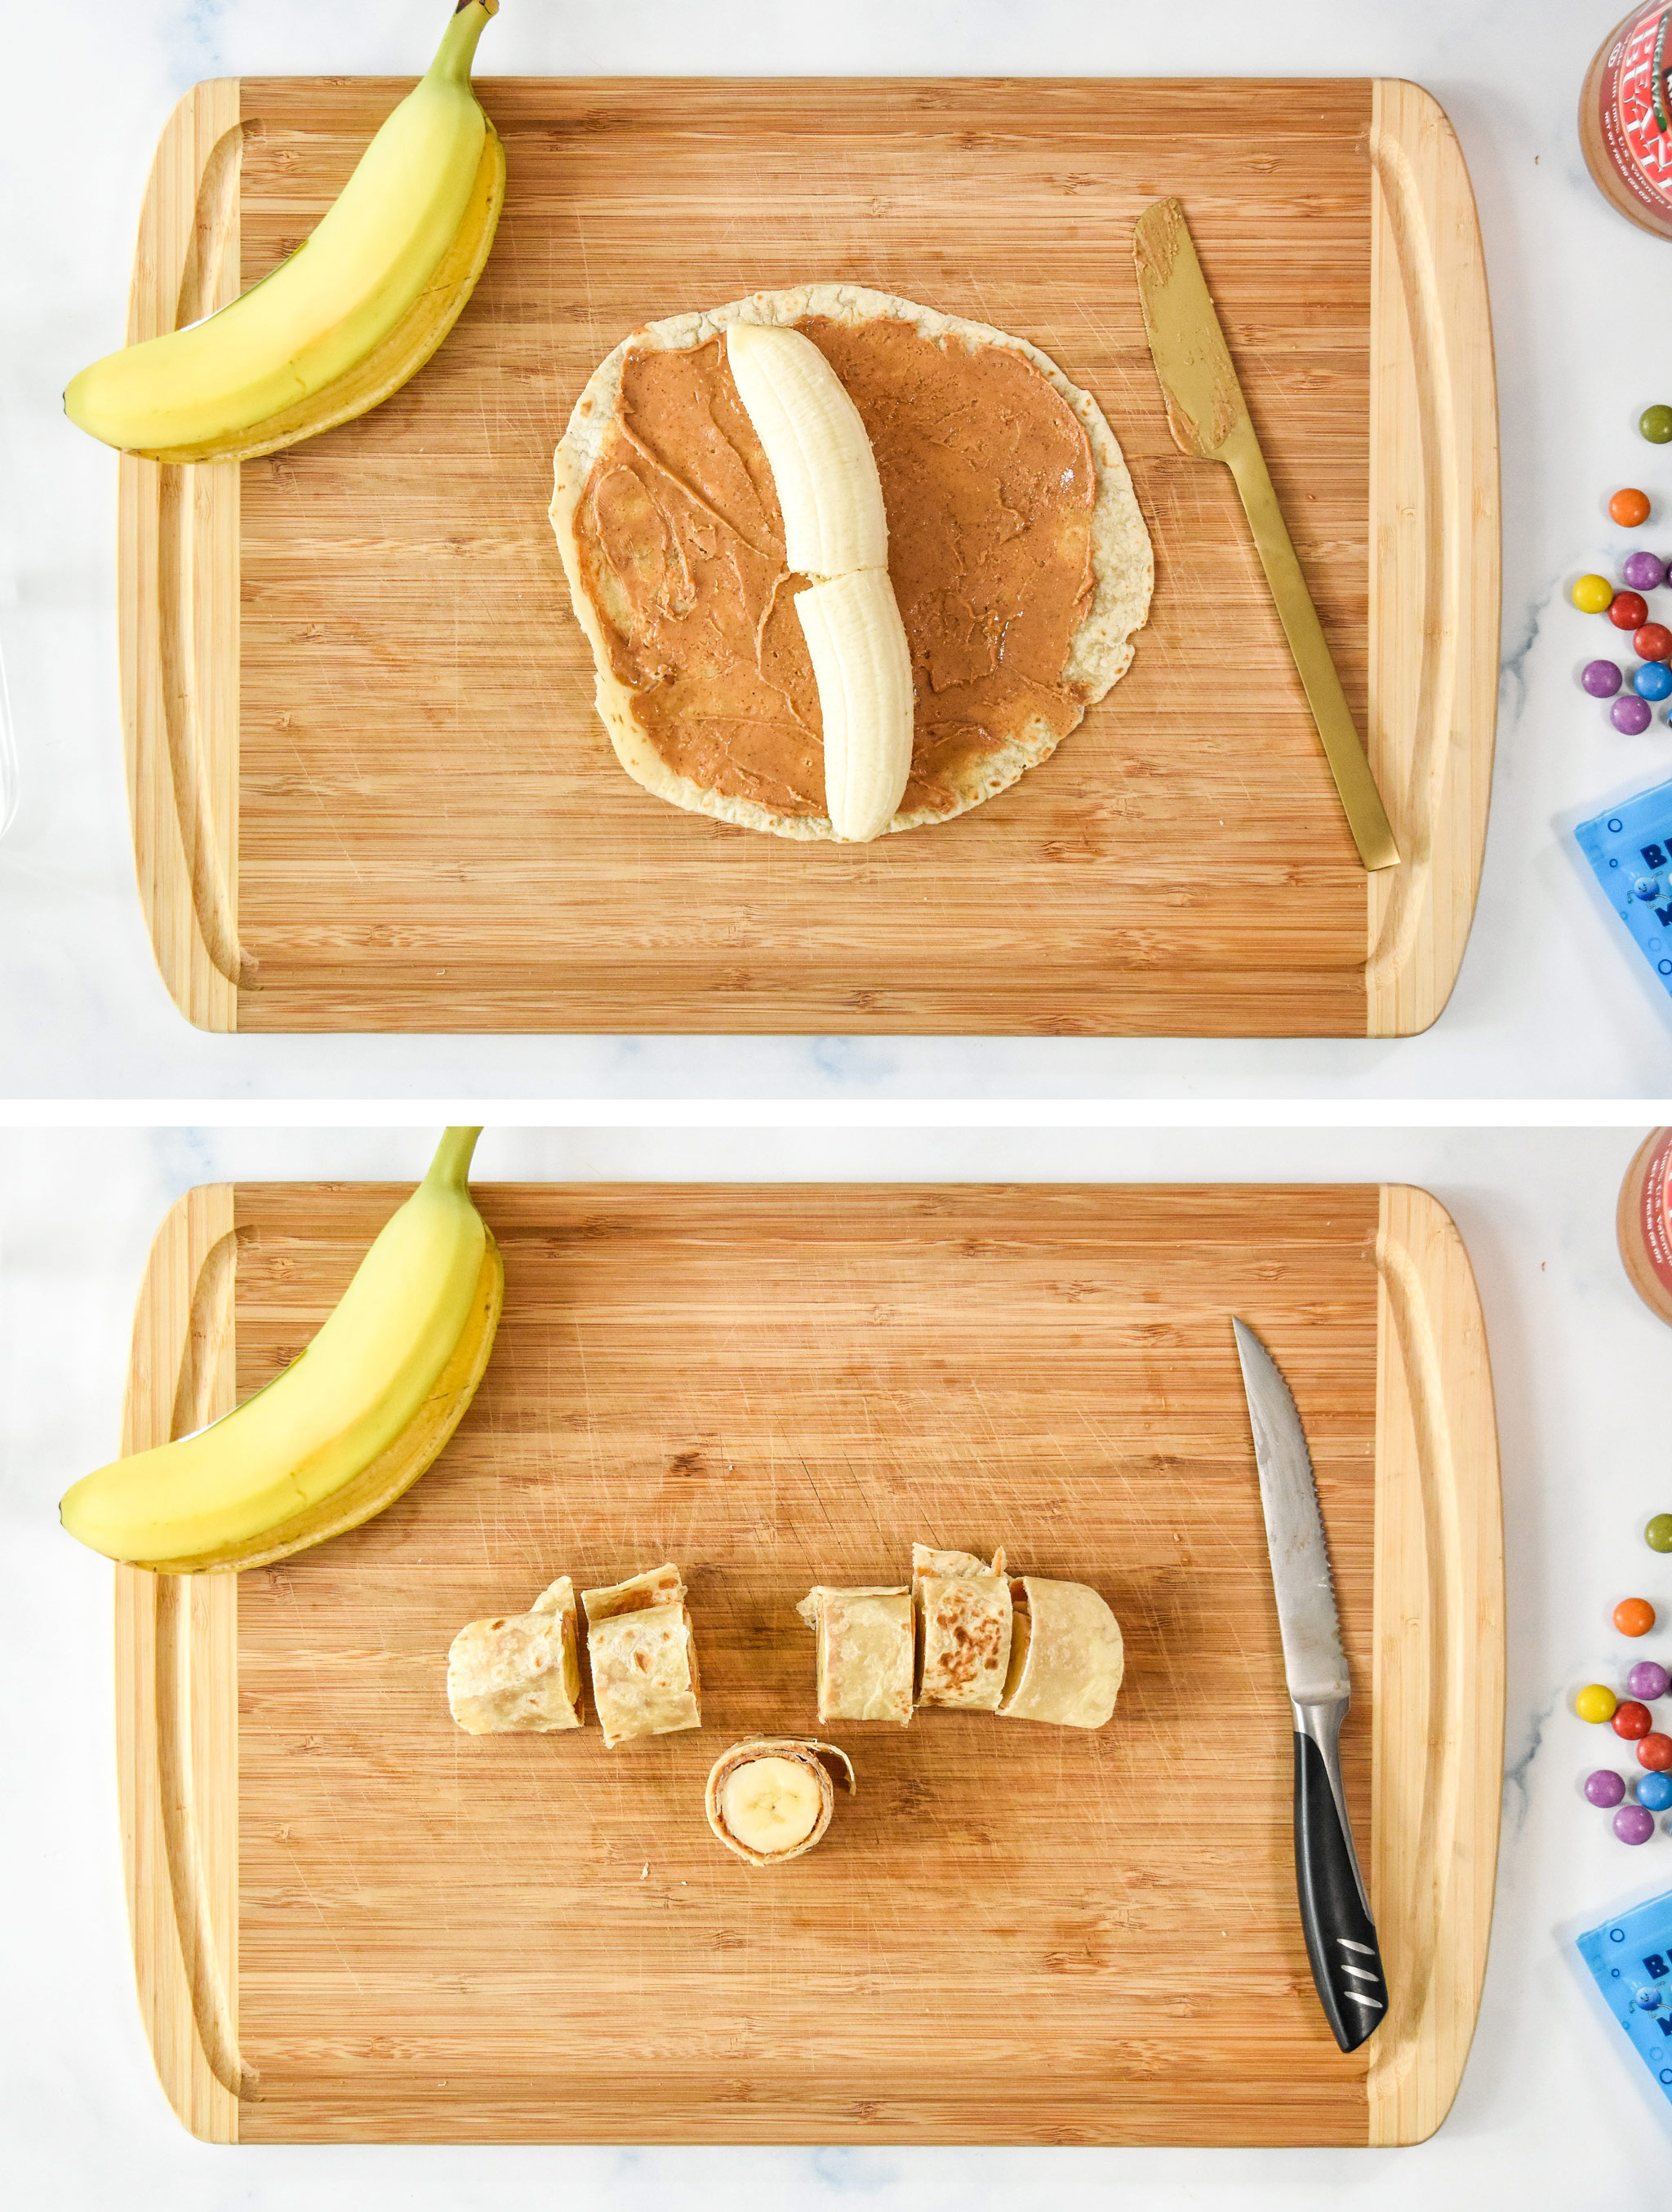 before and after rolling up a banana in a tortilla covered with peanut butter.